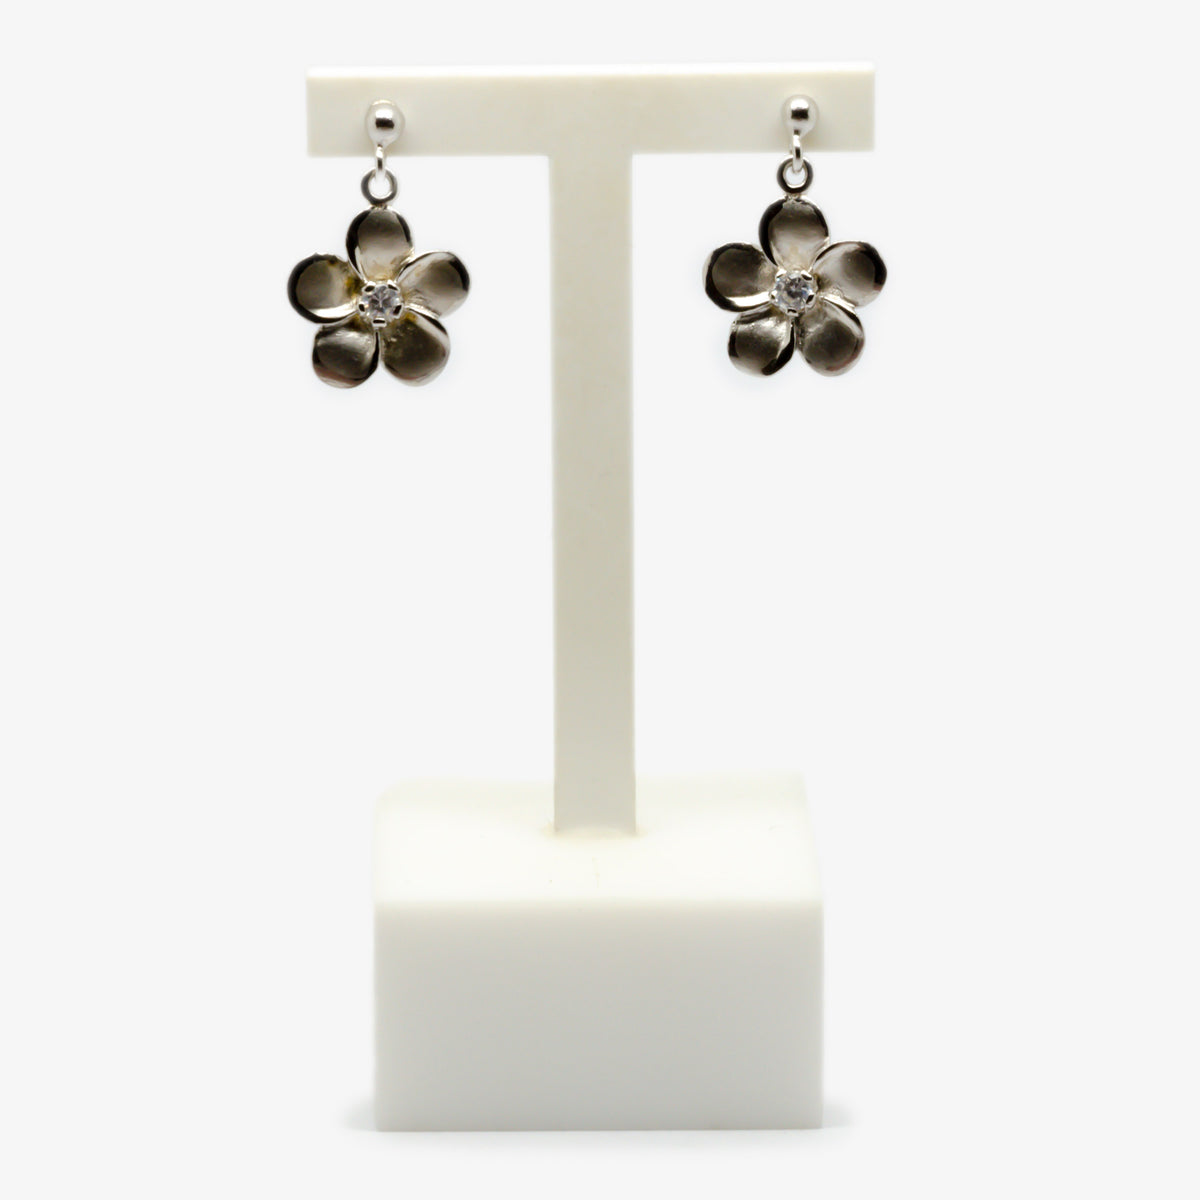 Front view picture of the silver flower earrings.